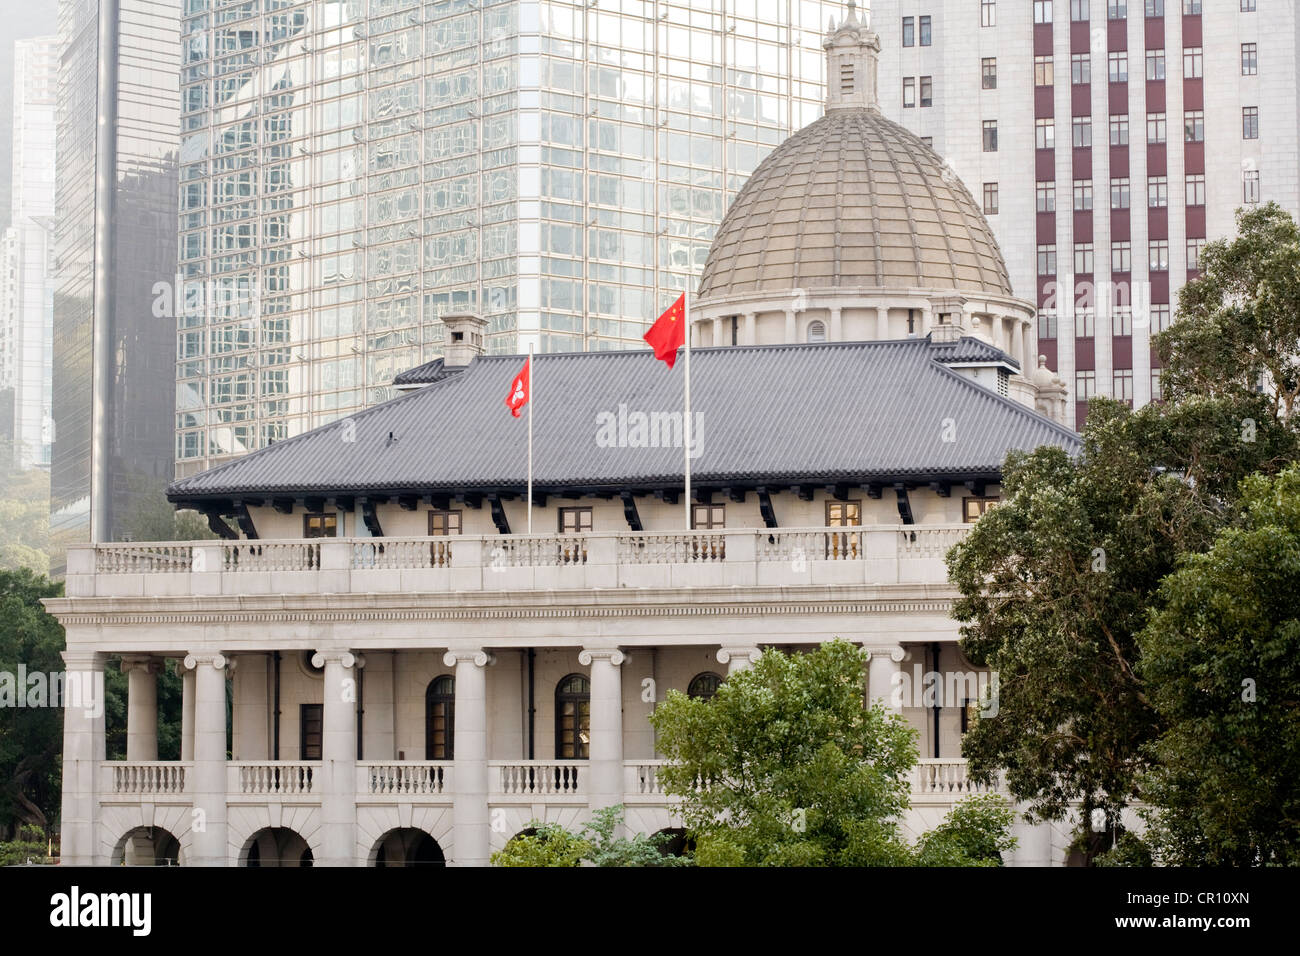 China, Hong Kong, Central District, Legislative Council Building dated 1912 by the English architect Sir aston Webb - Stock Image